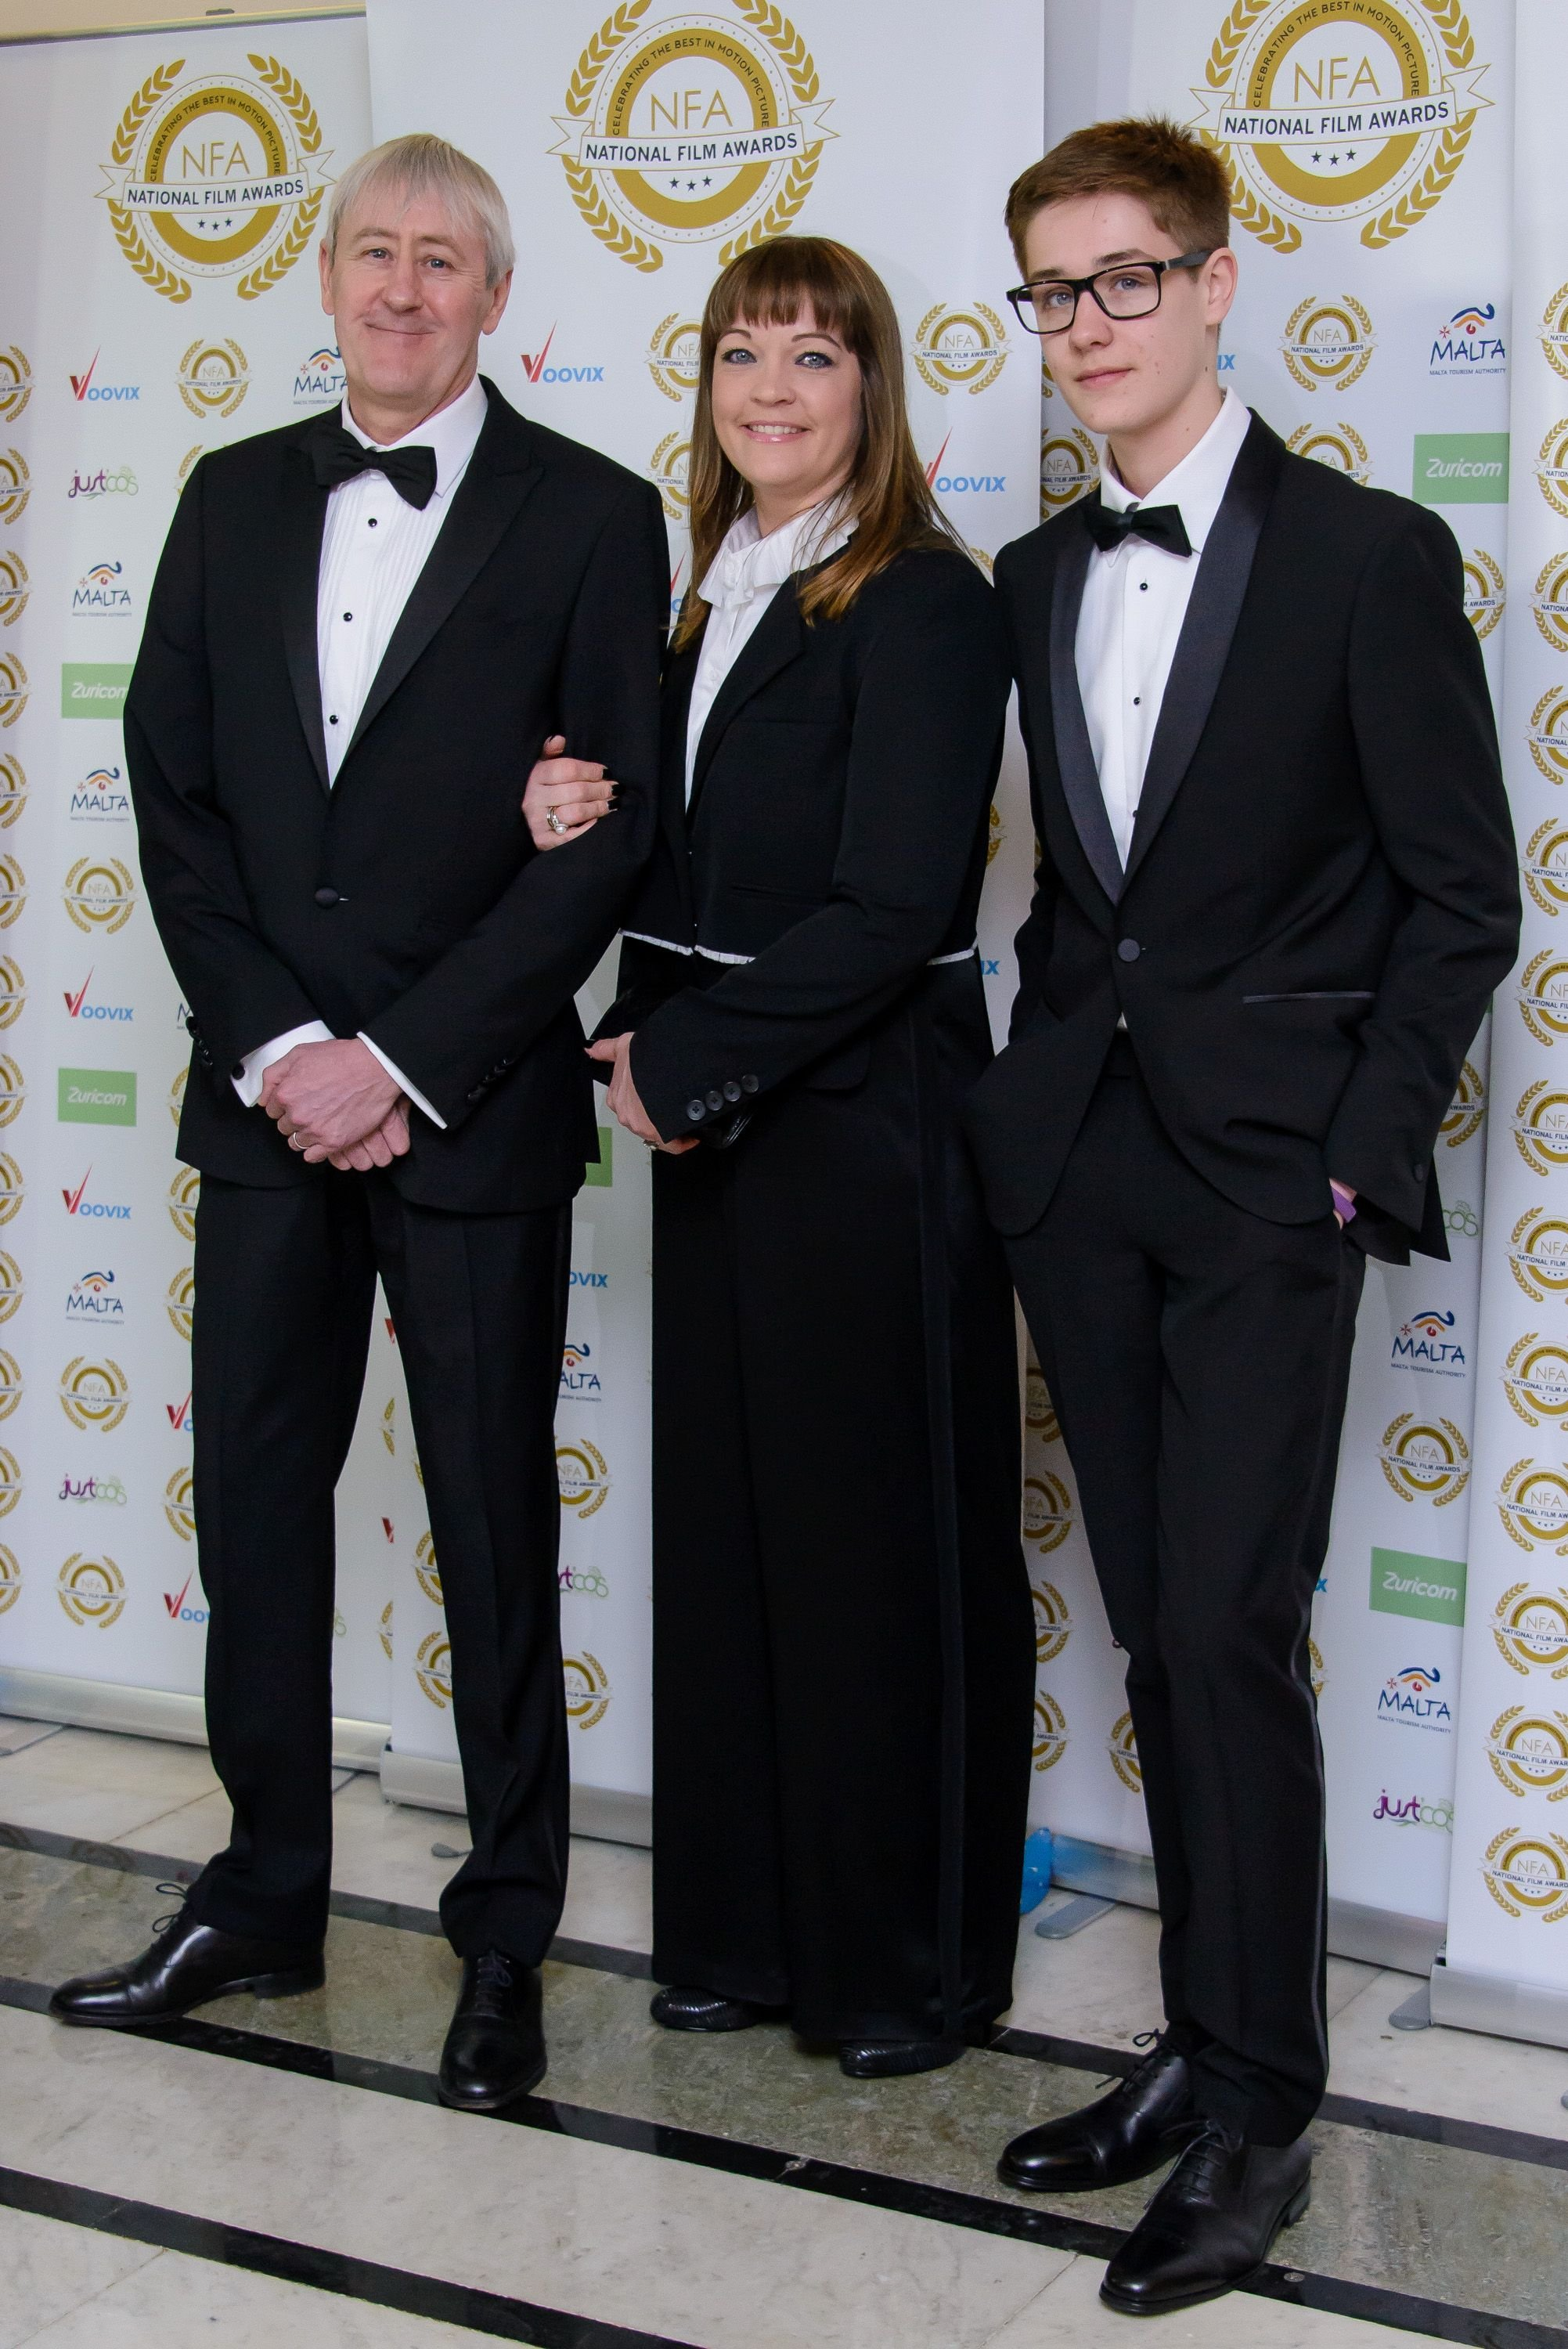 Nicholas, Lucy, and Archie Lyndhurst at the National Film Awards at Porchester Hall on March 29, 2017, in London, United Kingdom | Photo: Joe Maher/FilmMagic/Getty Images